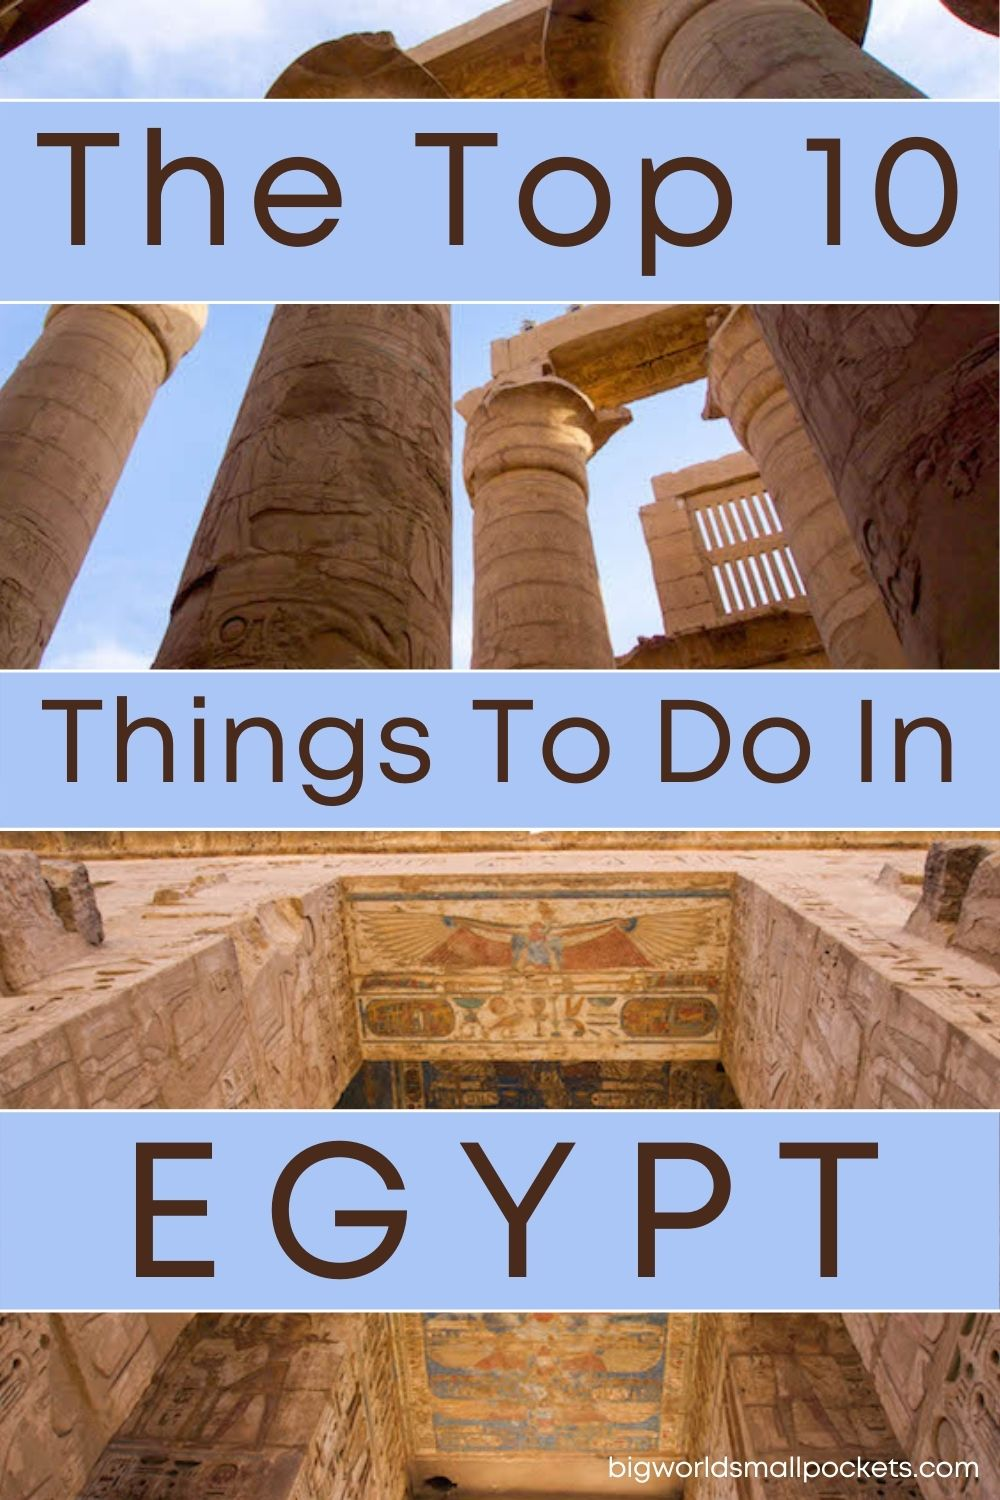 The Top 10 Things To Do in Egypt